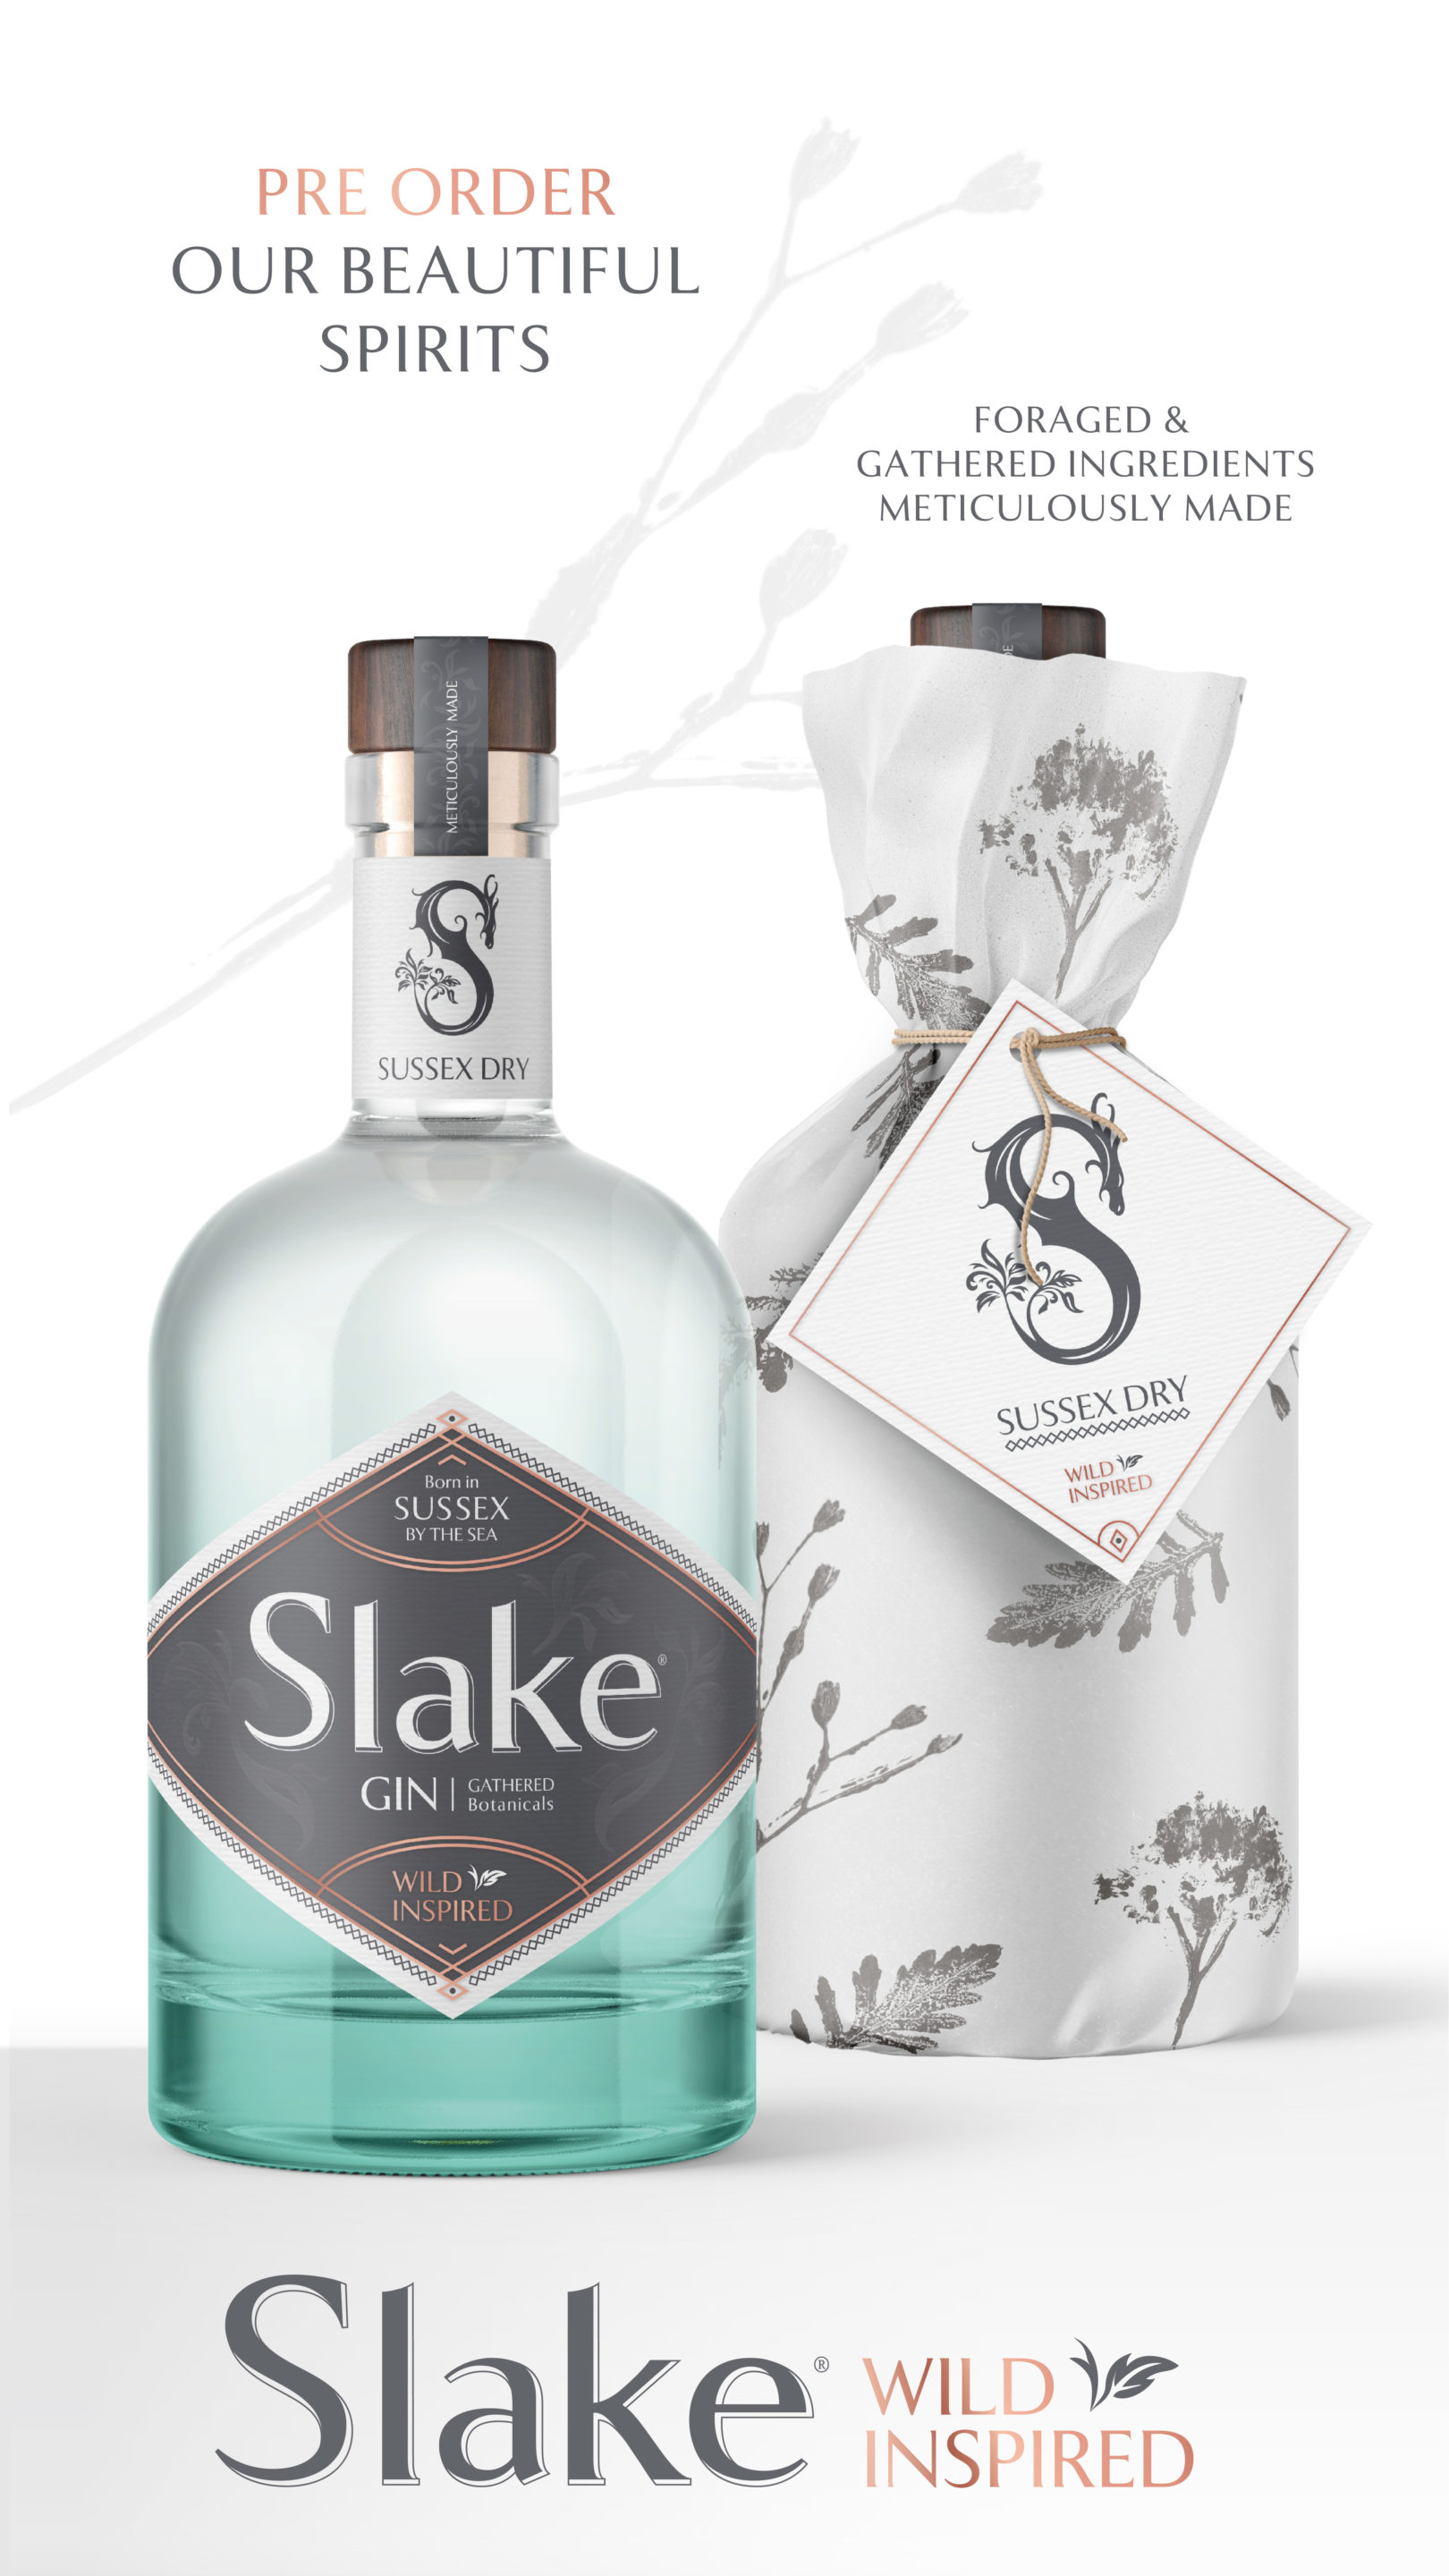 Slake Spirits Sussex Dry Gin bottles wrapped and unwrapped with aromatic botanical print Pre Order